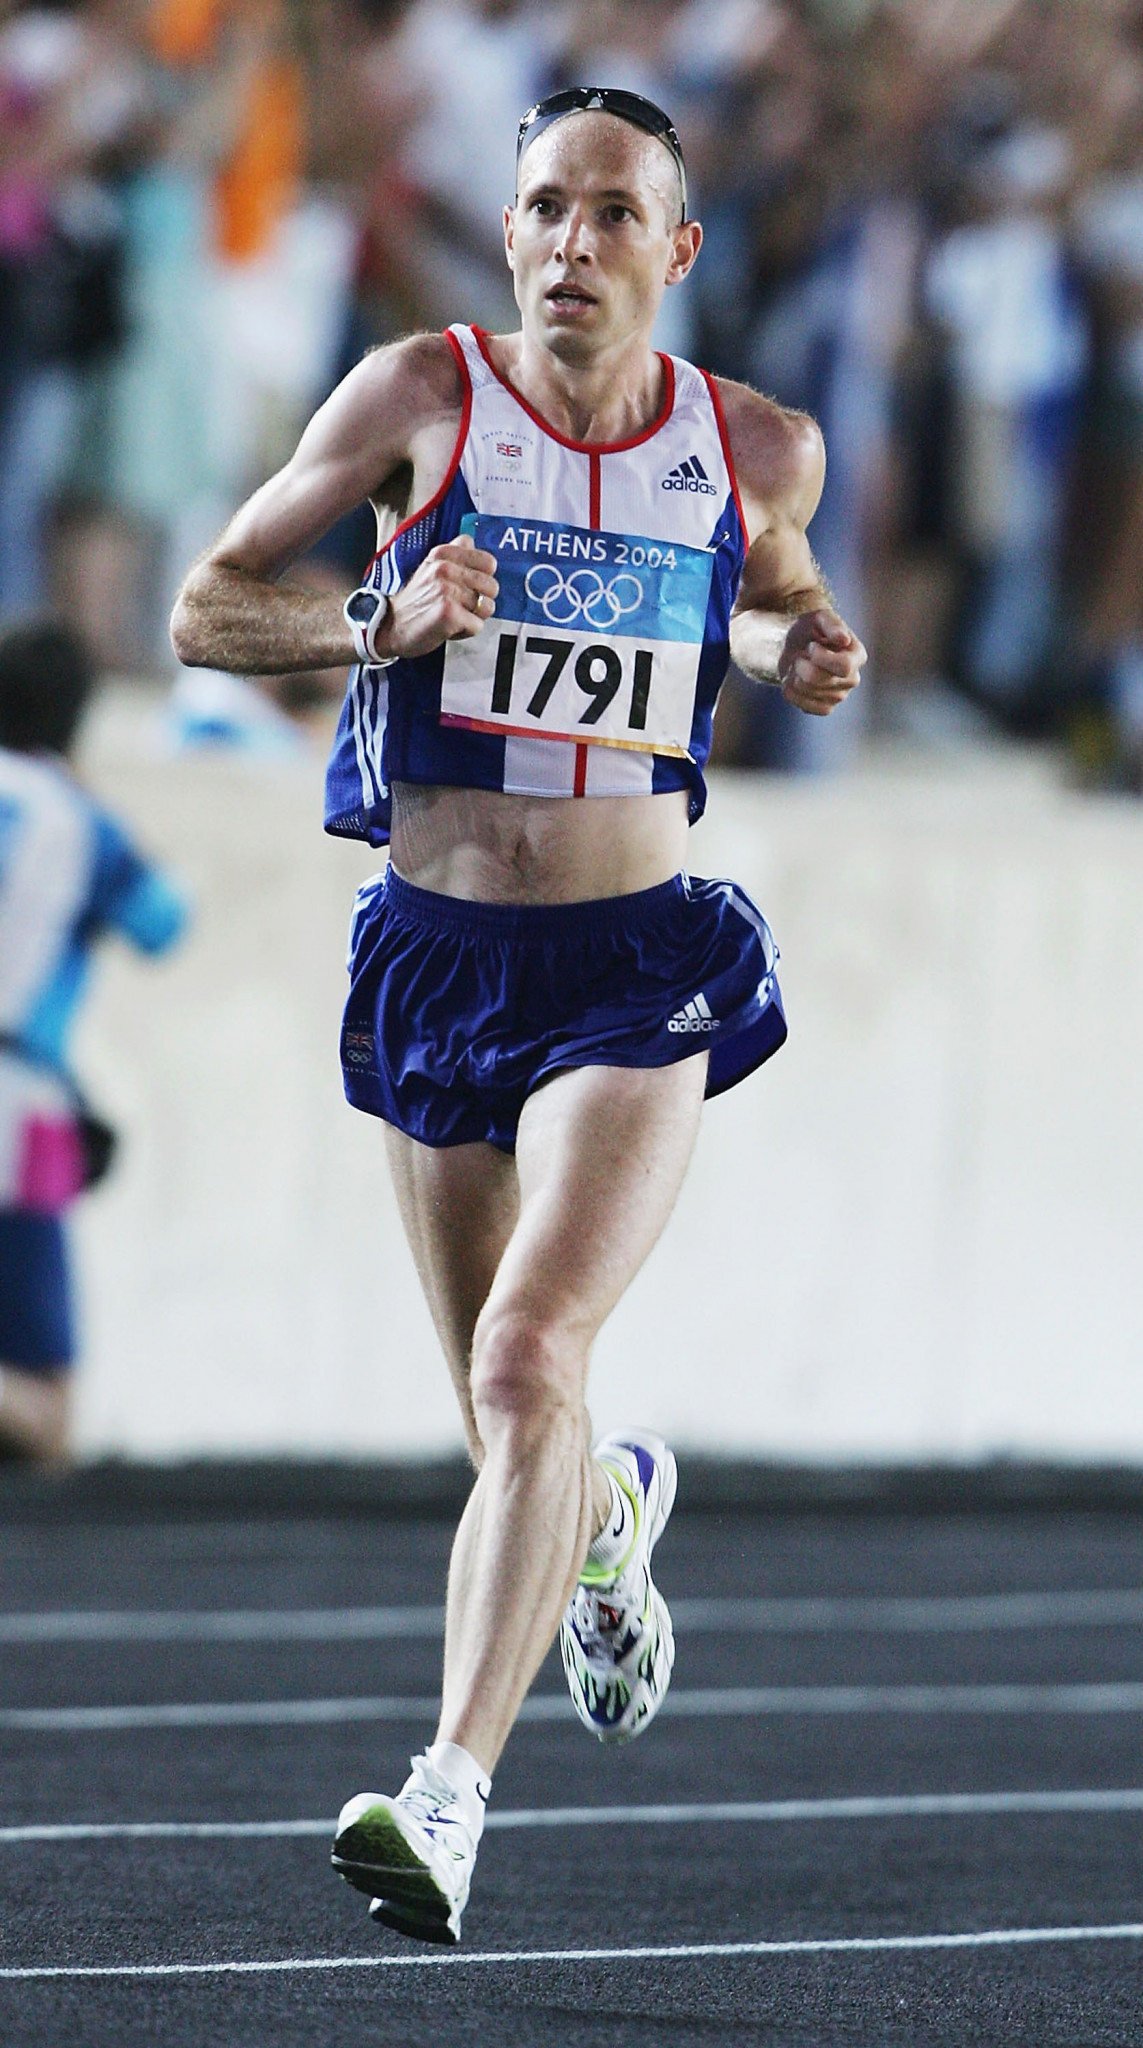 Britain's three-times Olympian marathon runner Jon Brown, pictured above during Athens 2004, has criticised Christian Coleman's attitude to whereabouts testing ©Getty Images